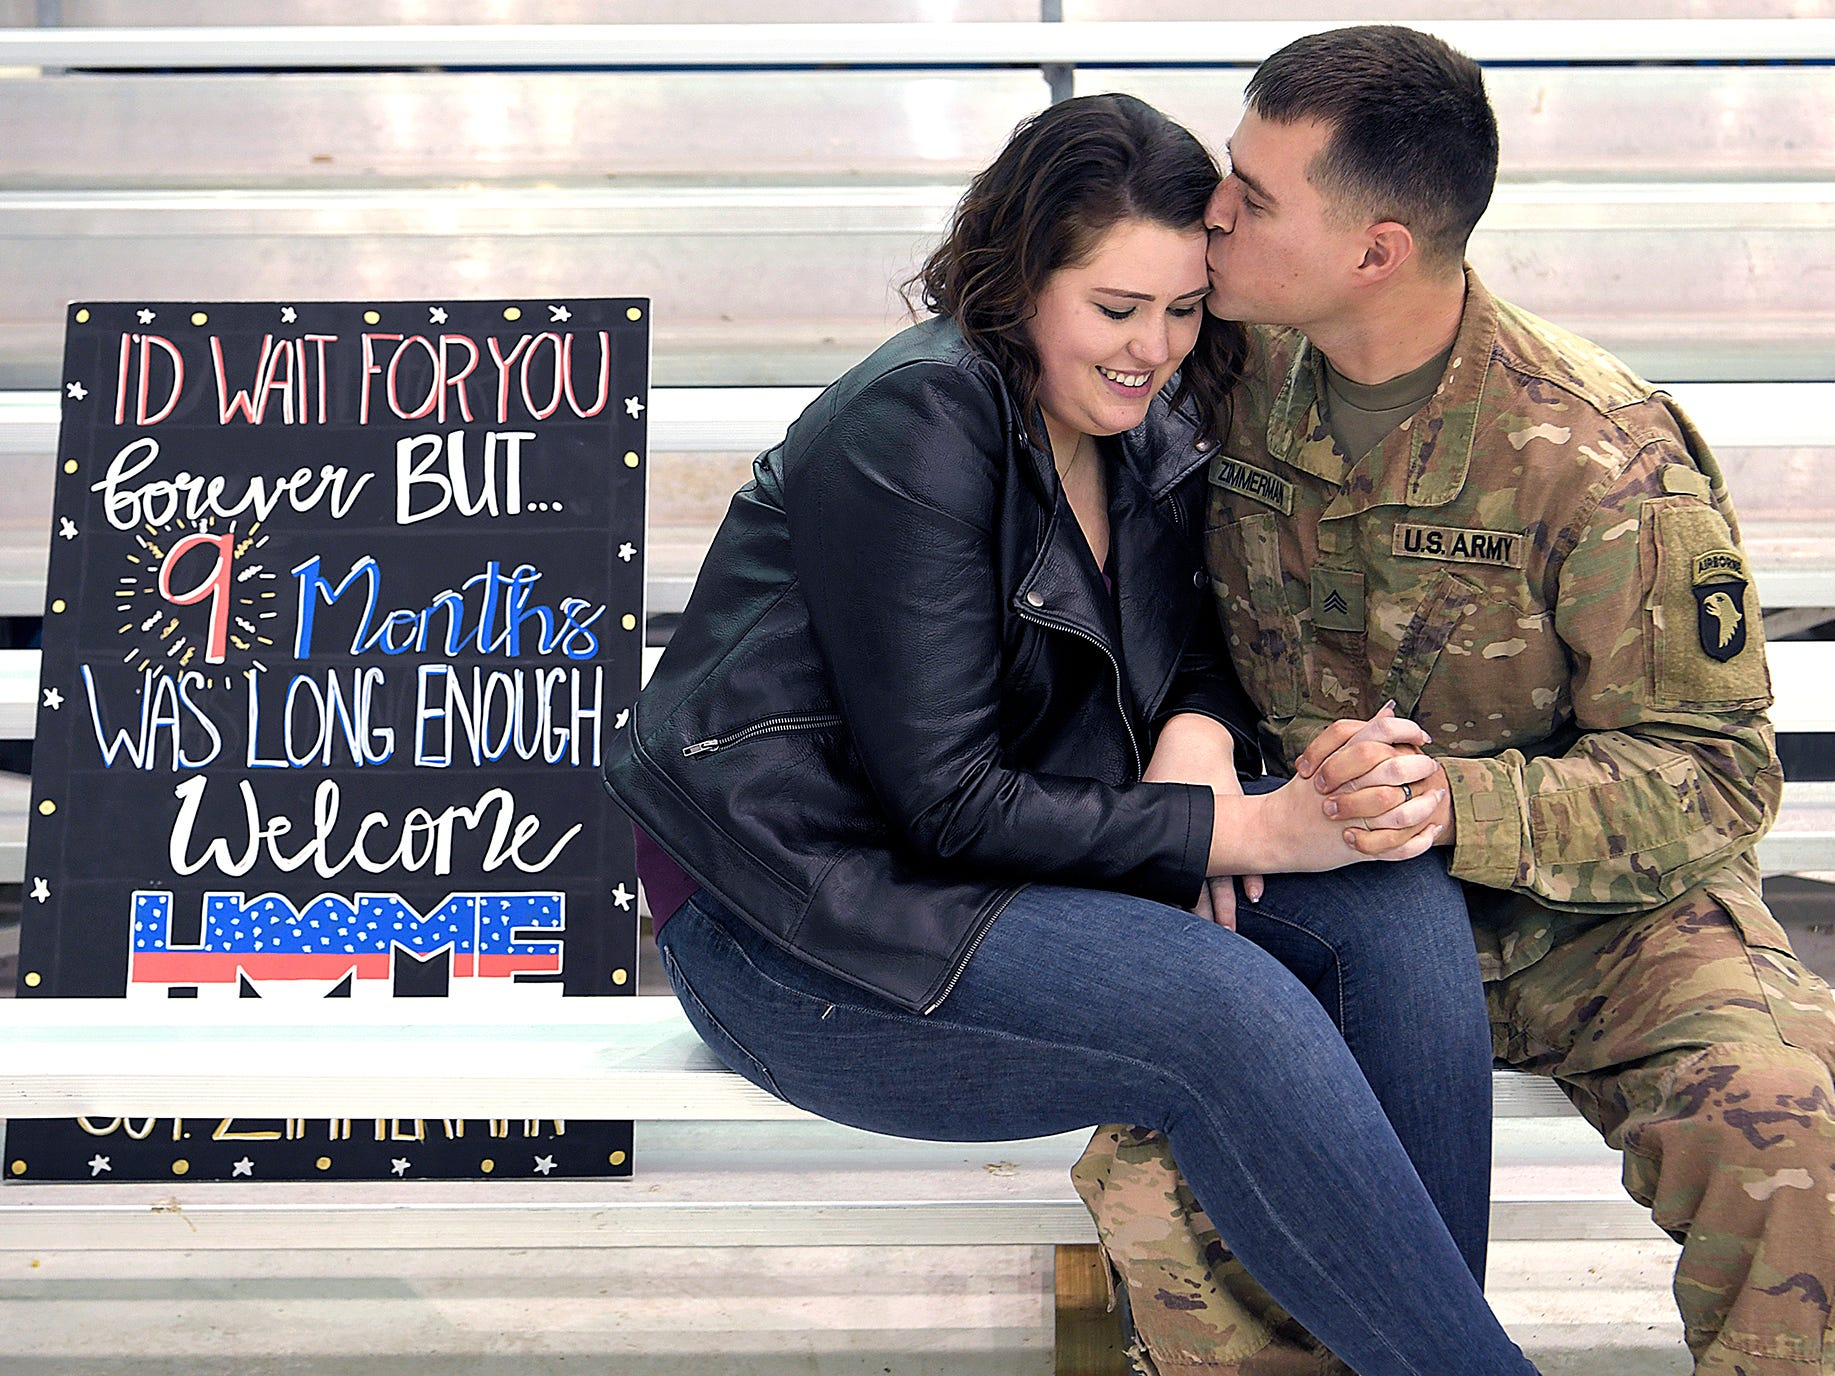 Carly and Tony Zimmerman embrace after Tony and 170 other soldiers from the 101st Combat Aviation Brigade, 101st Airborne Division (Air Assault) returned to Fort Campbell, KY on Friday, Feb. 15, 2019 after a nine-month deployment to Afghanistan.